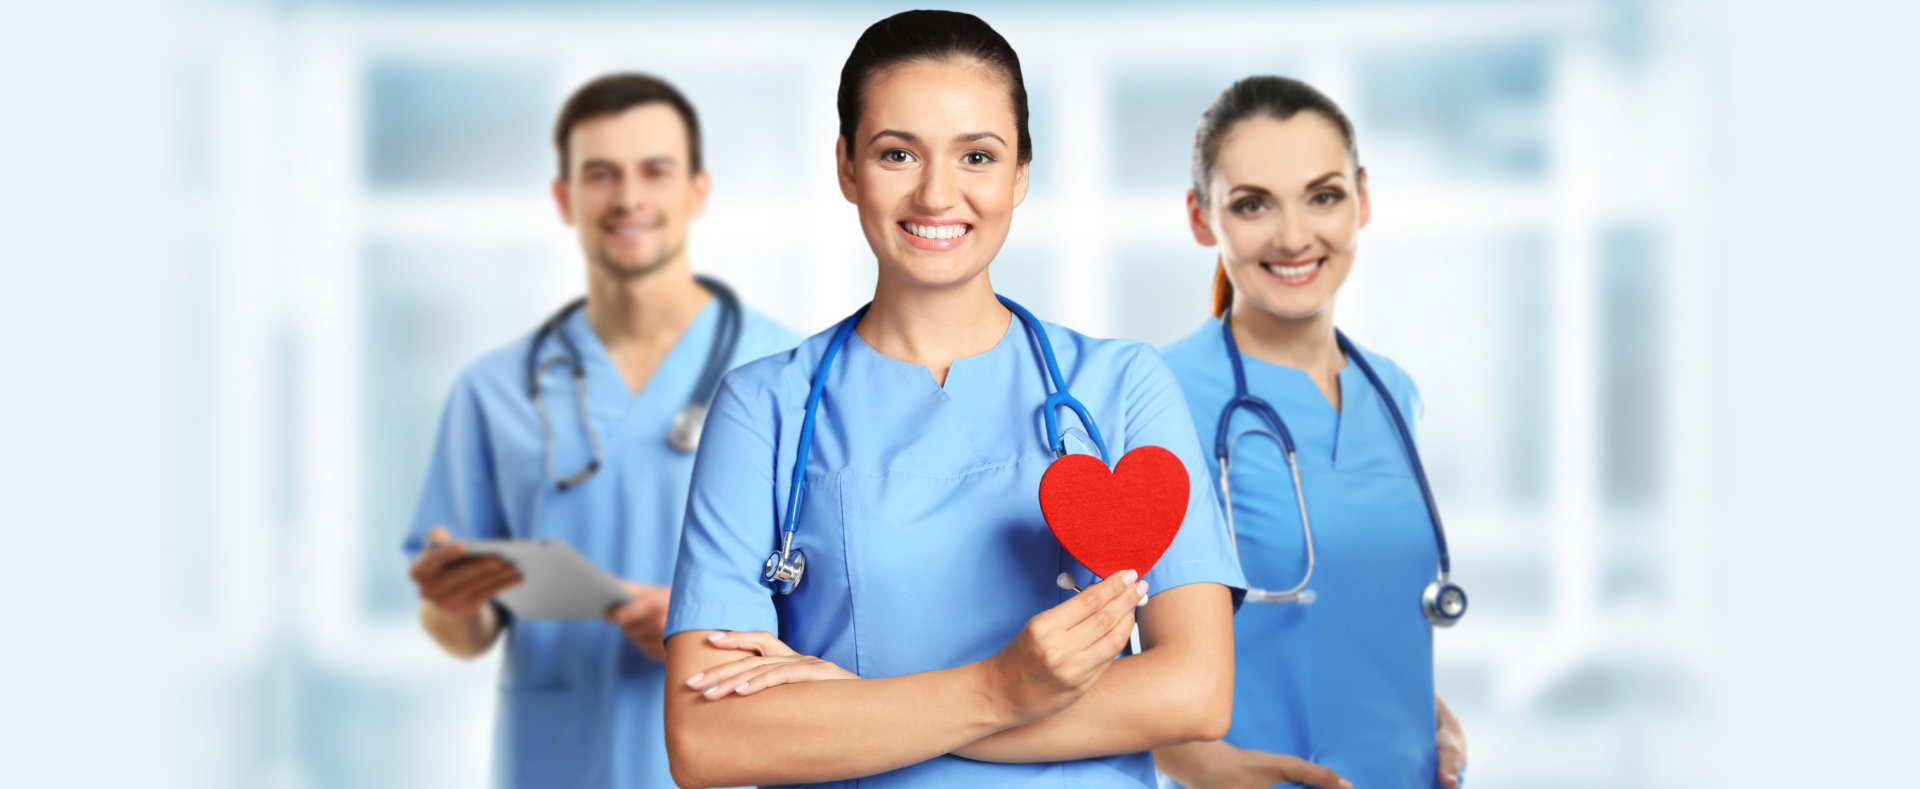 Young female doctor with red heart and medical team on blurred background